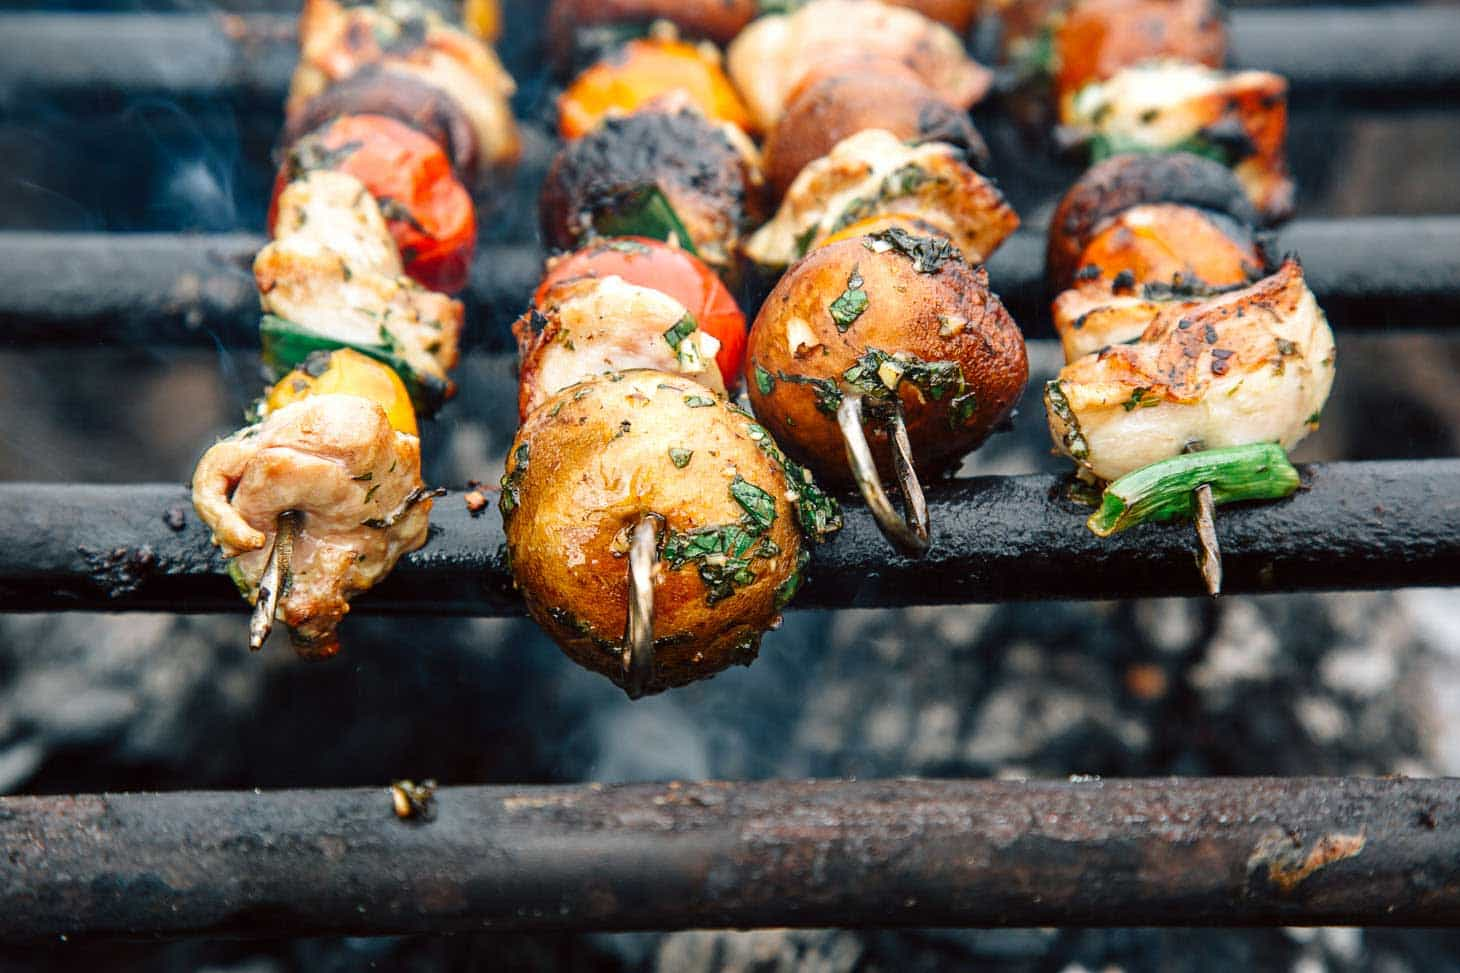 Chicken and veggie kabobs on a grill